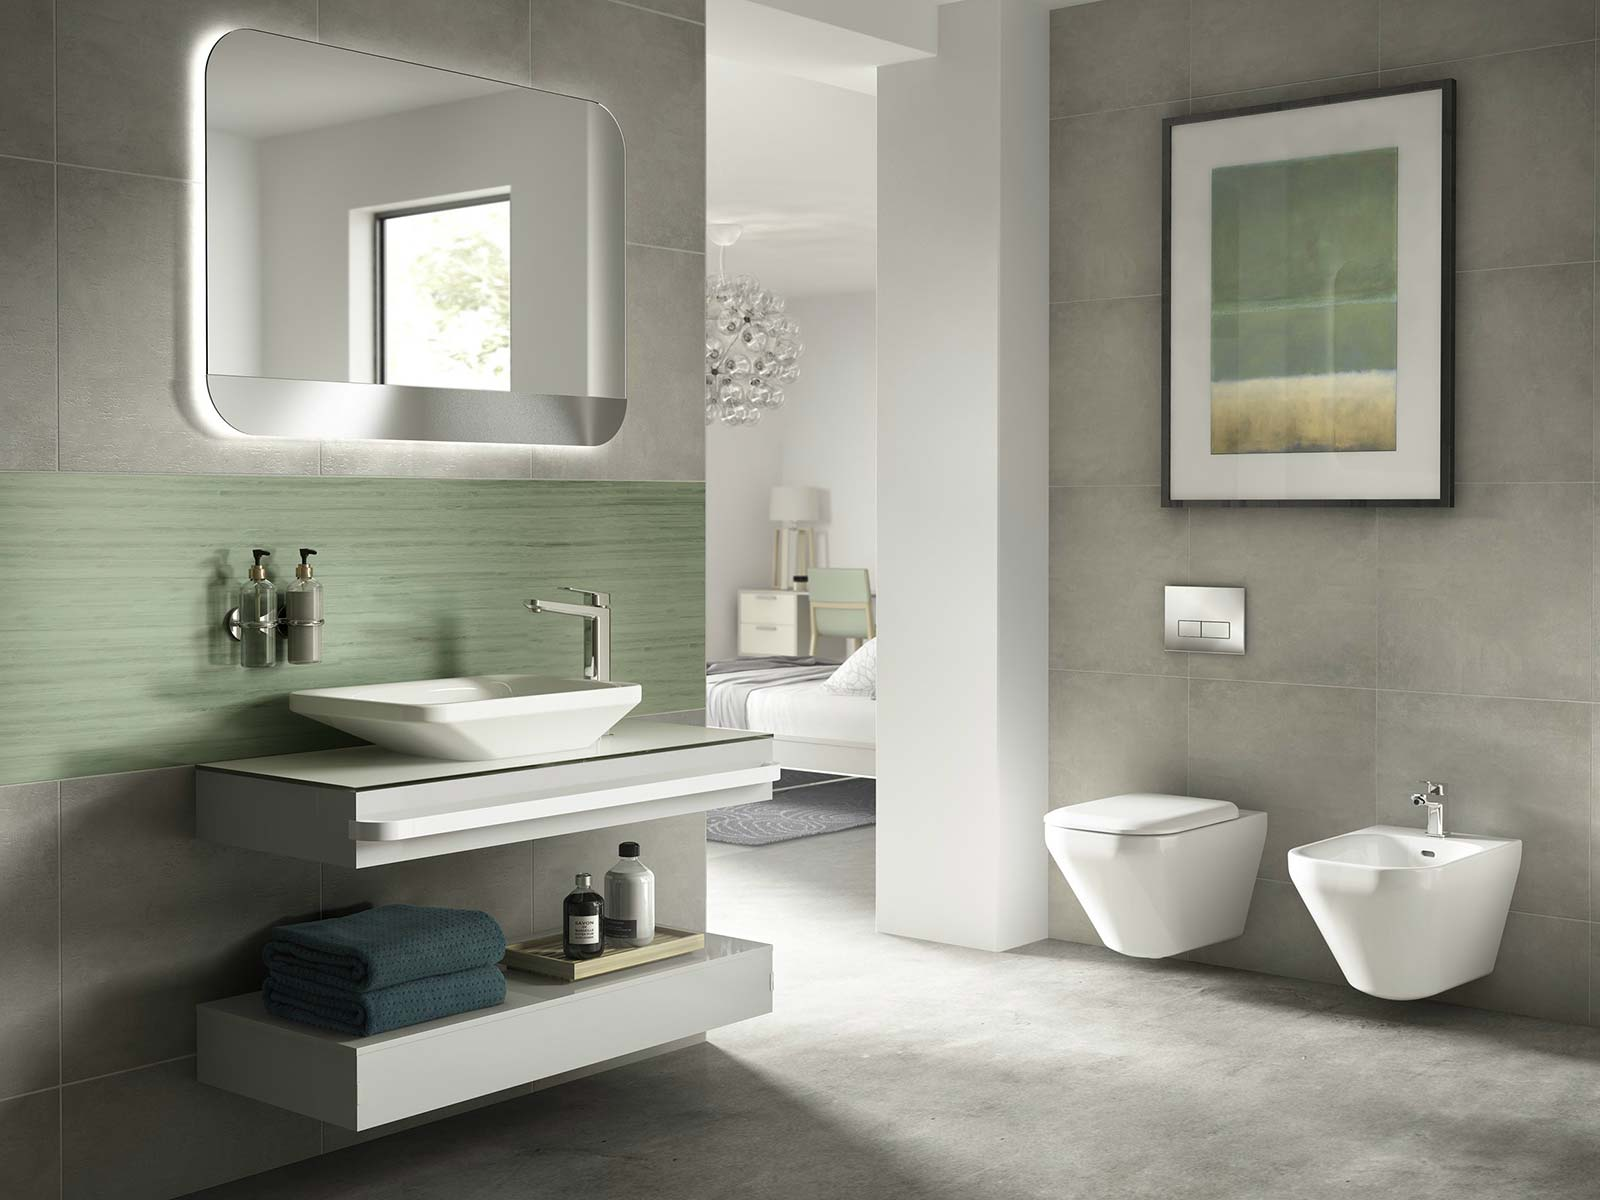 Meubles salle de bain tonic ii ideal standard schmitt ney for Ideal meuble catalogue